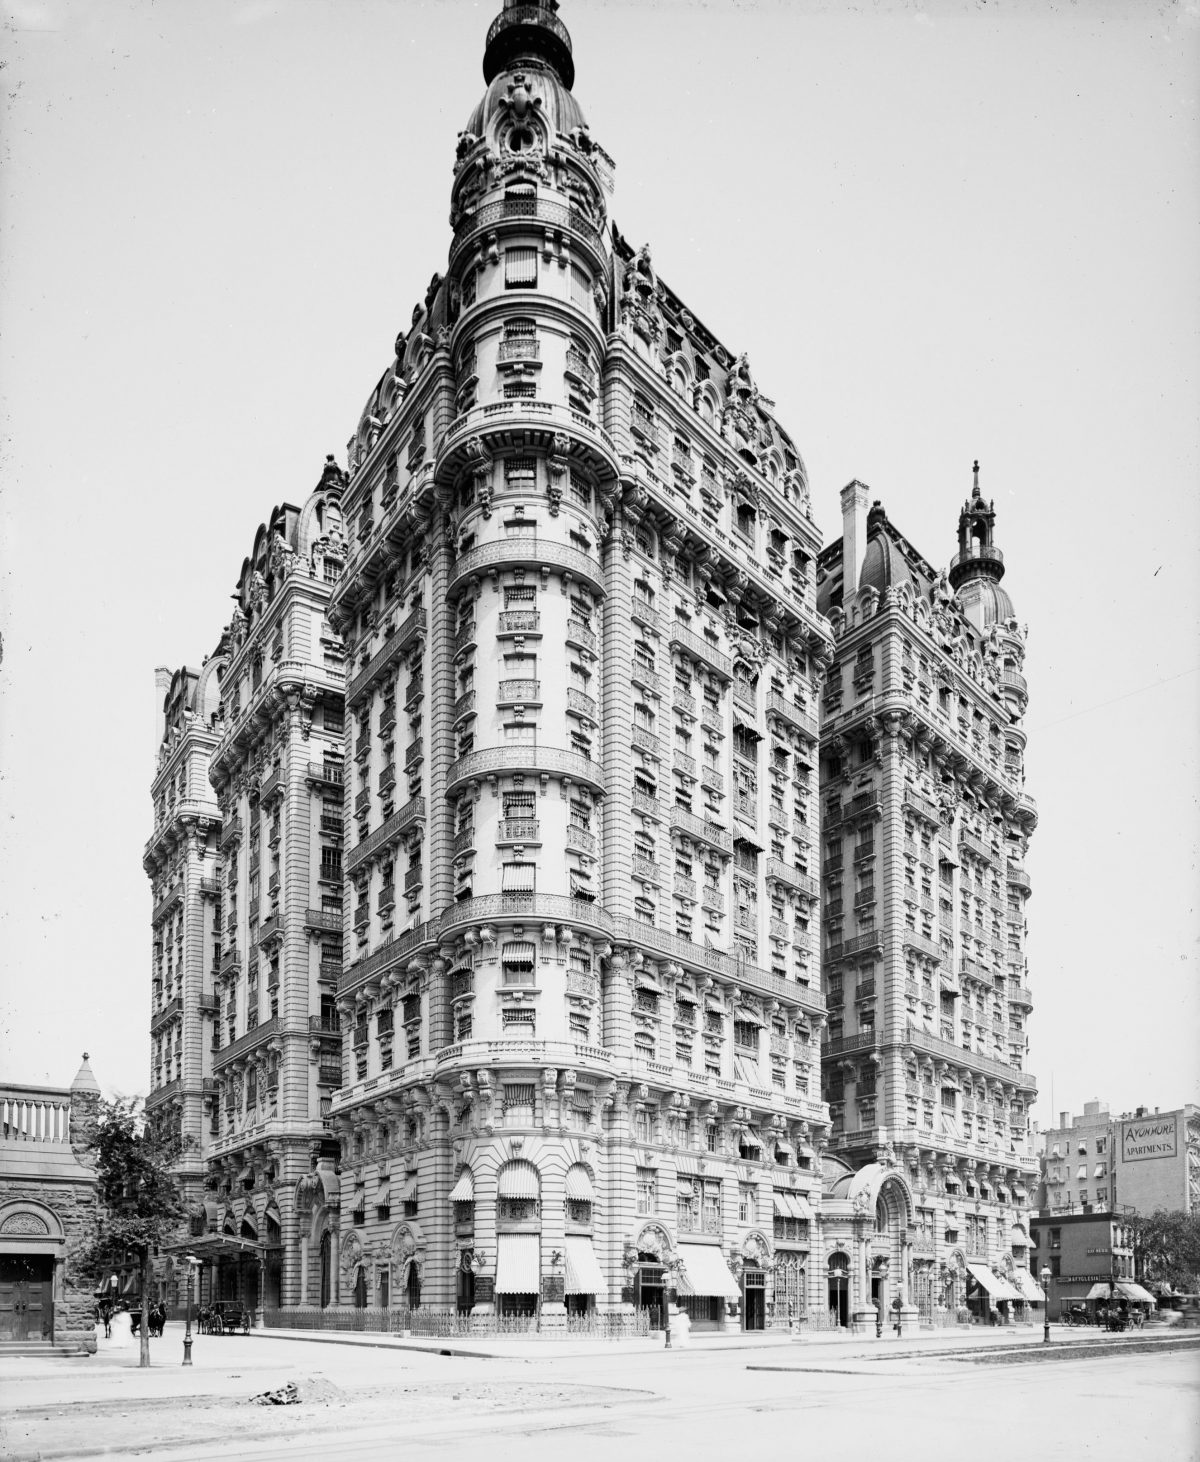 The Ansonia, 1904. The Ansonia Apartment Building On Broadway In New York City, Built In 1899. Photograph, C1904. Nyc: The Ansonia, 1904.